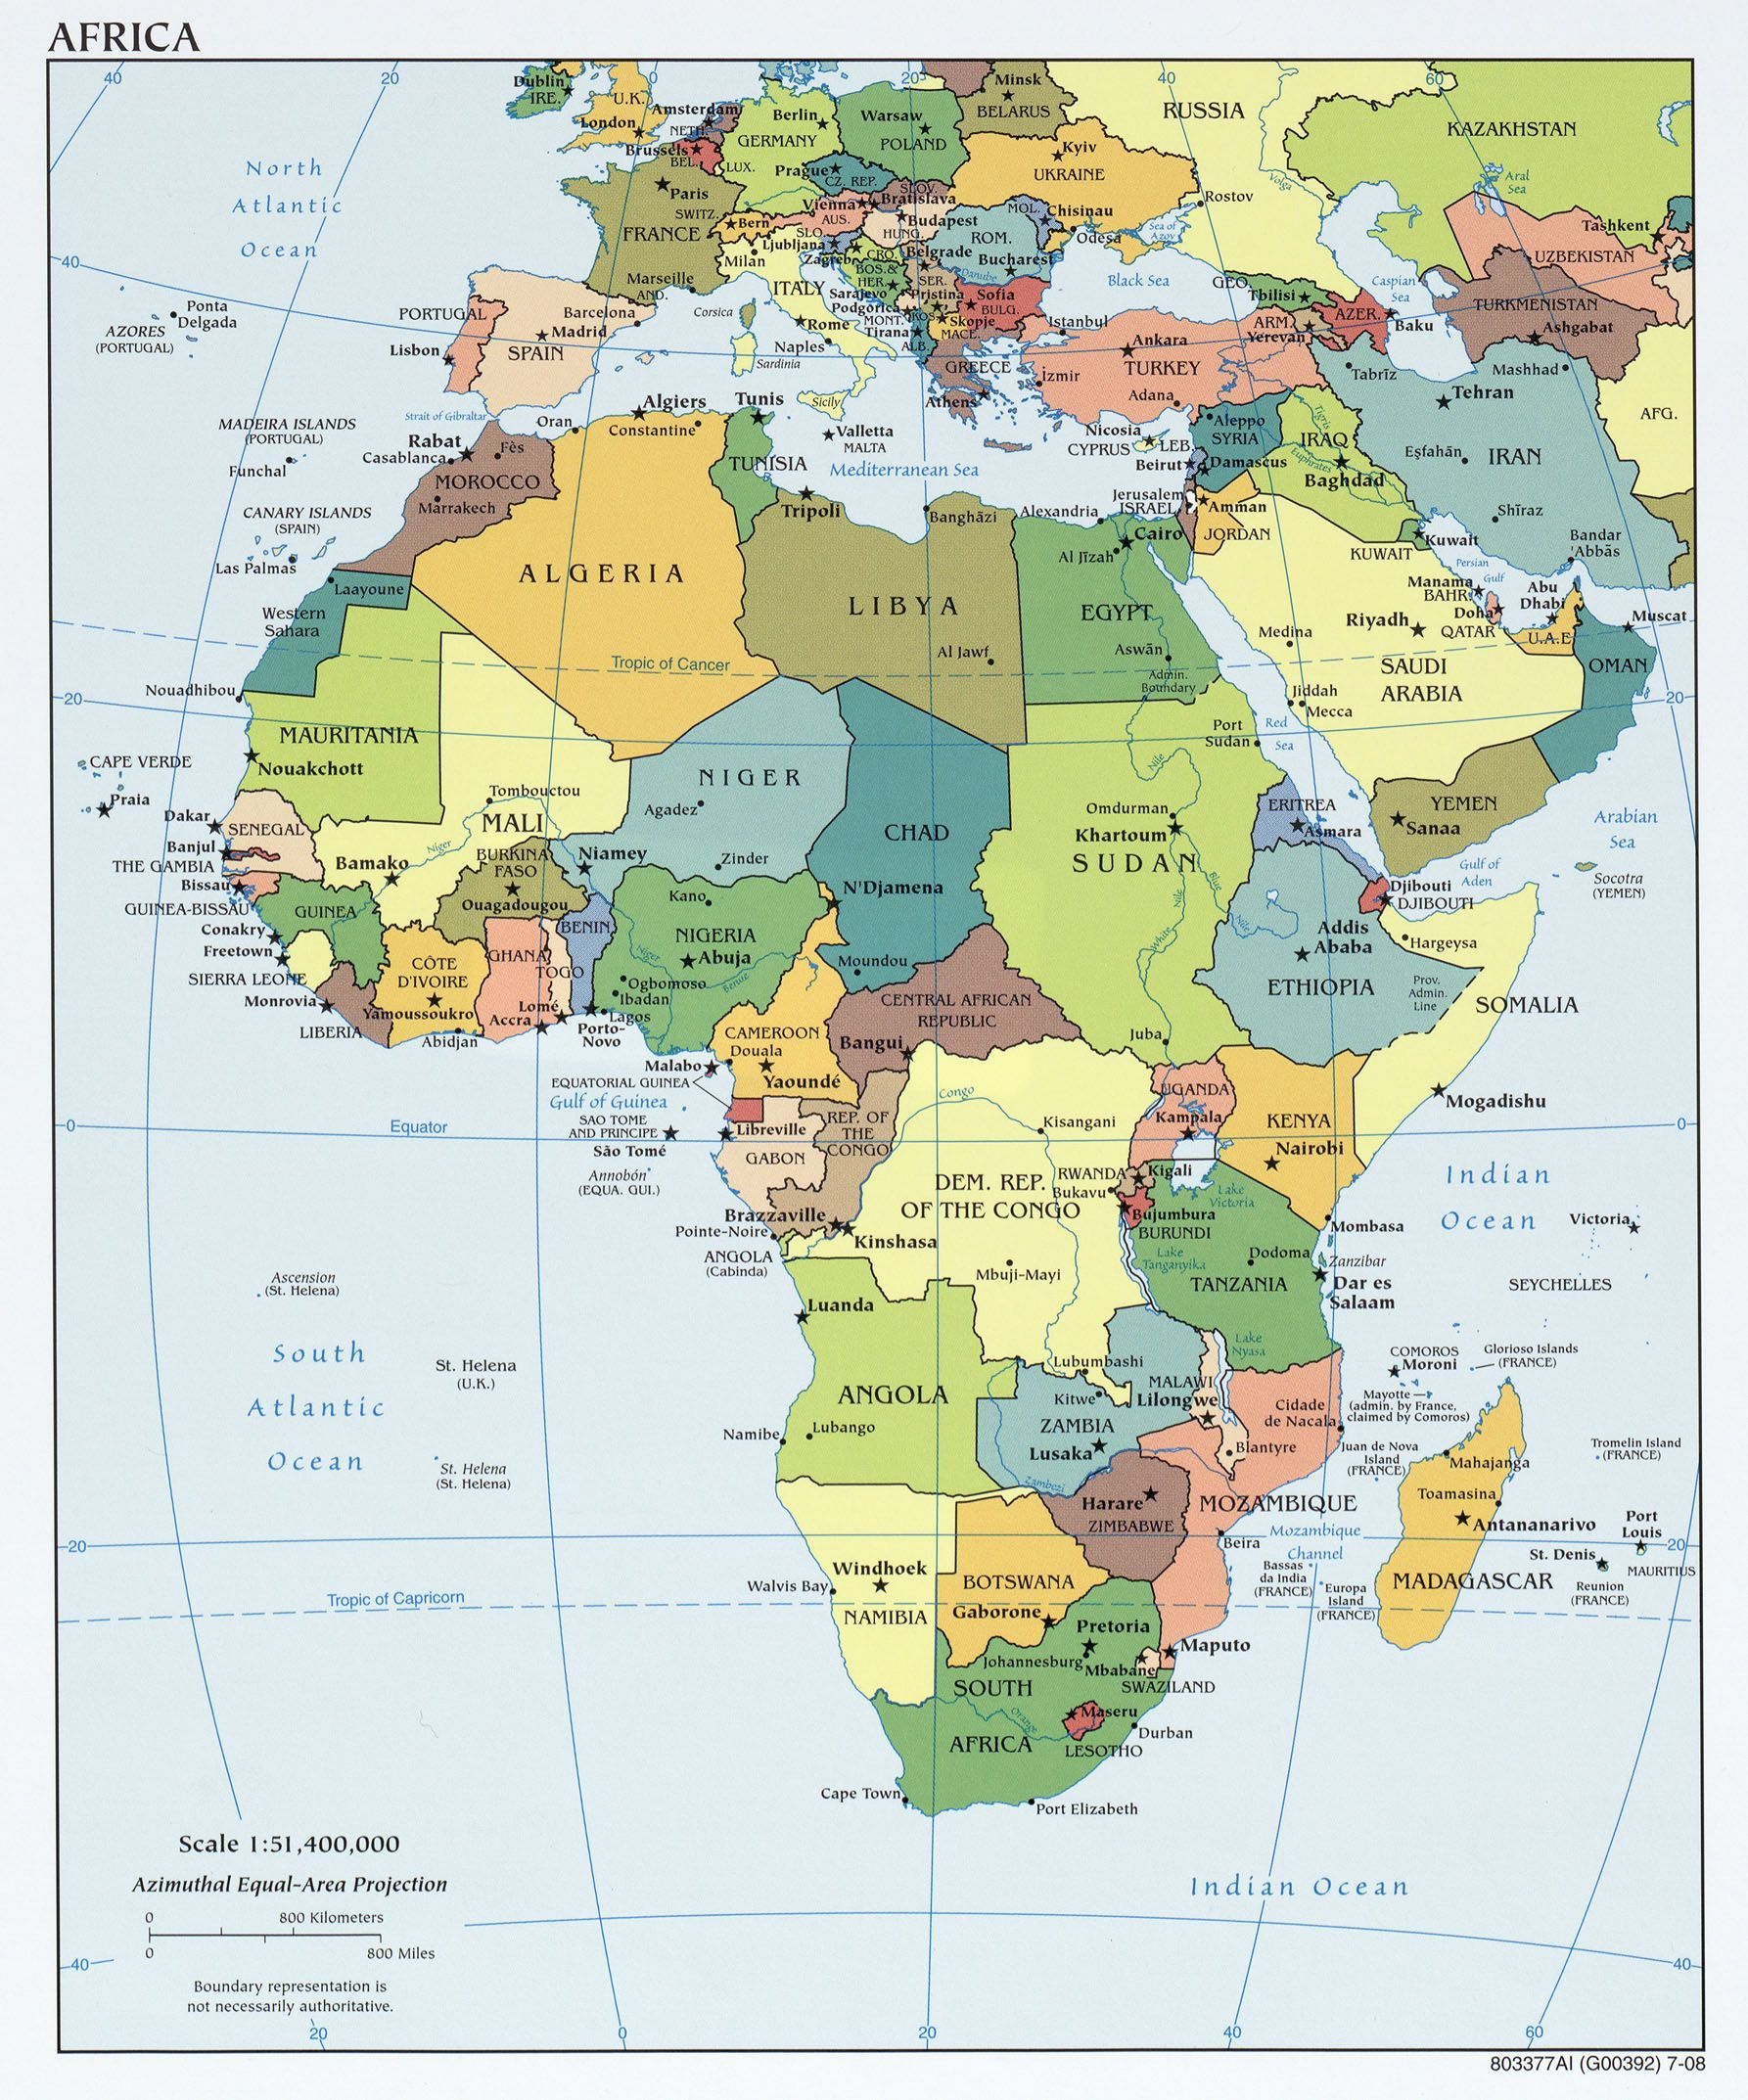 maps-of-african-countries-16